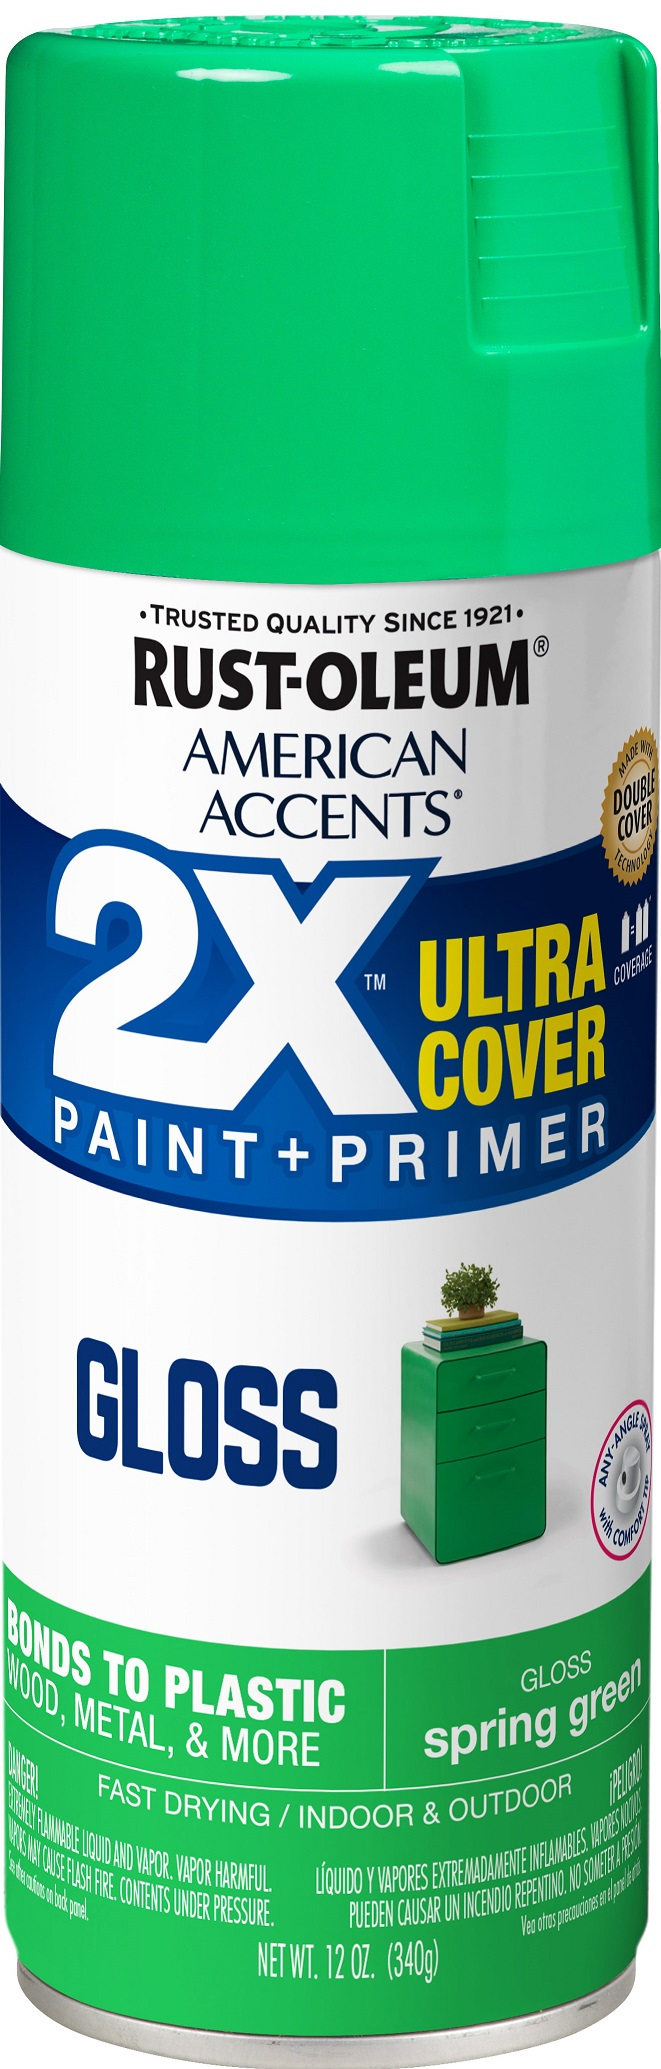 (3 Pack) Rust-Oleum American Accents Ultra Cover 2X Gloss Spring Green Spray Paint and Primer in 1, 12 oz